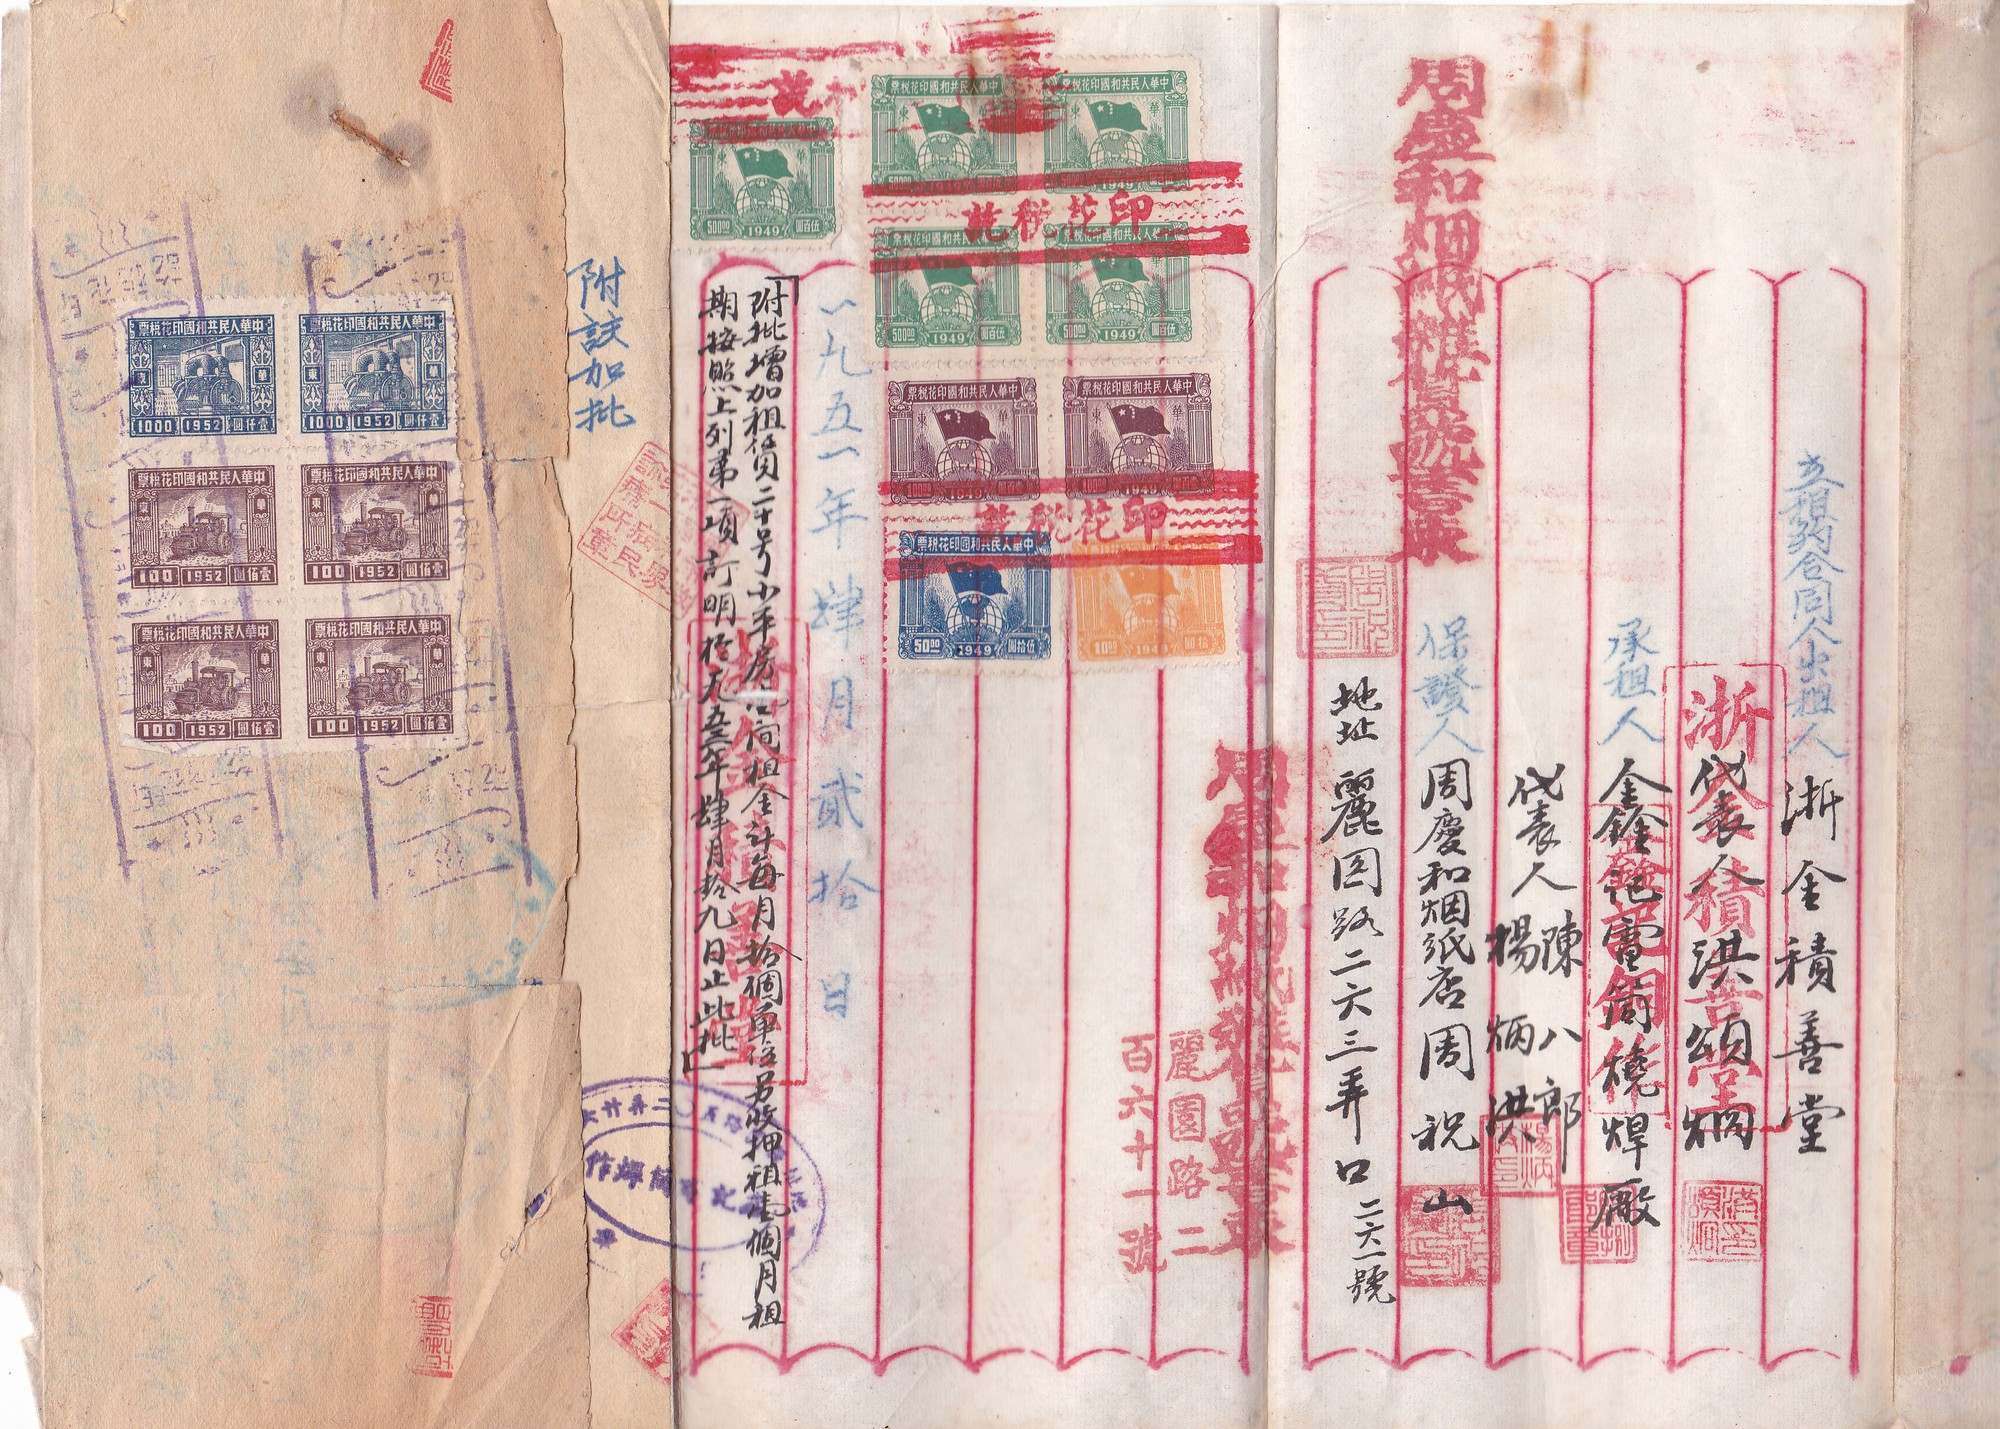 D4039, Real Estate Deed of Shanghai 1951, with 15 pcs Revenue Stamps